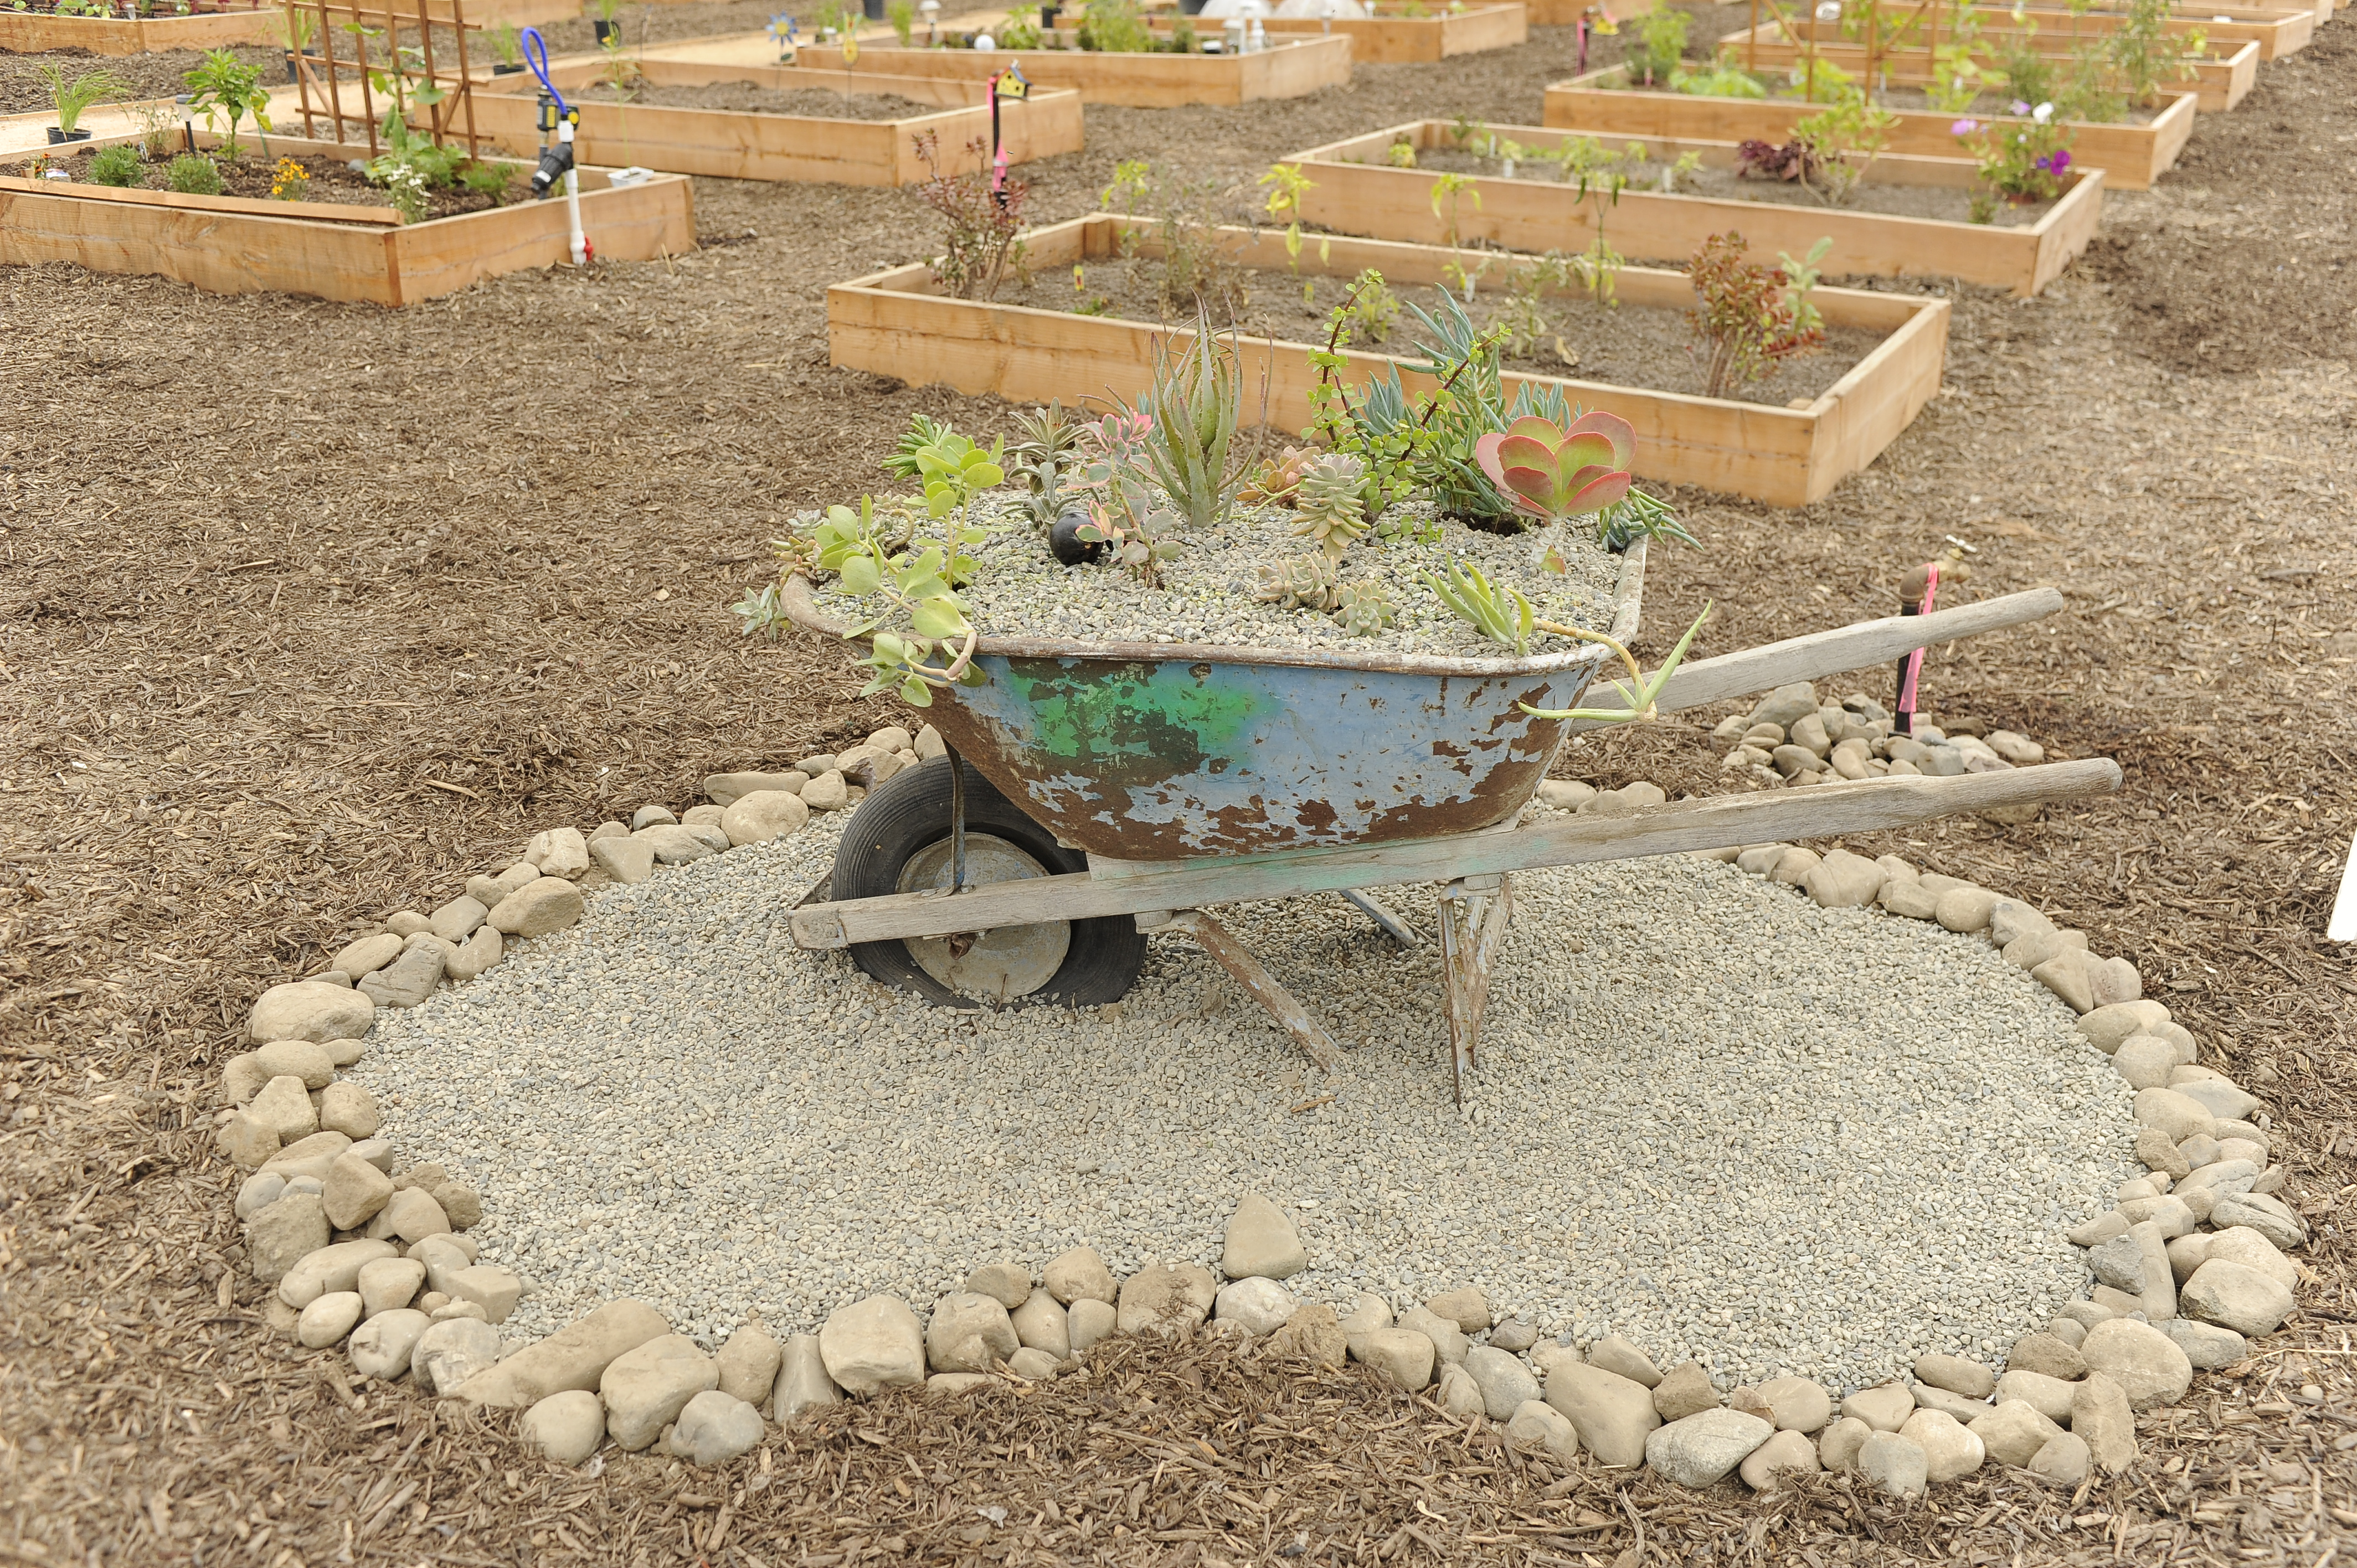 A wheel barrel in the middle of a small rock garden